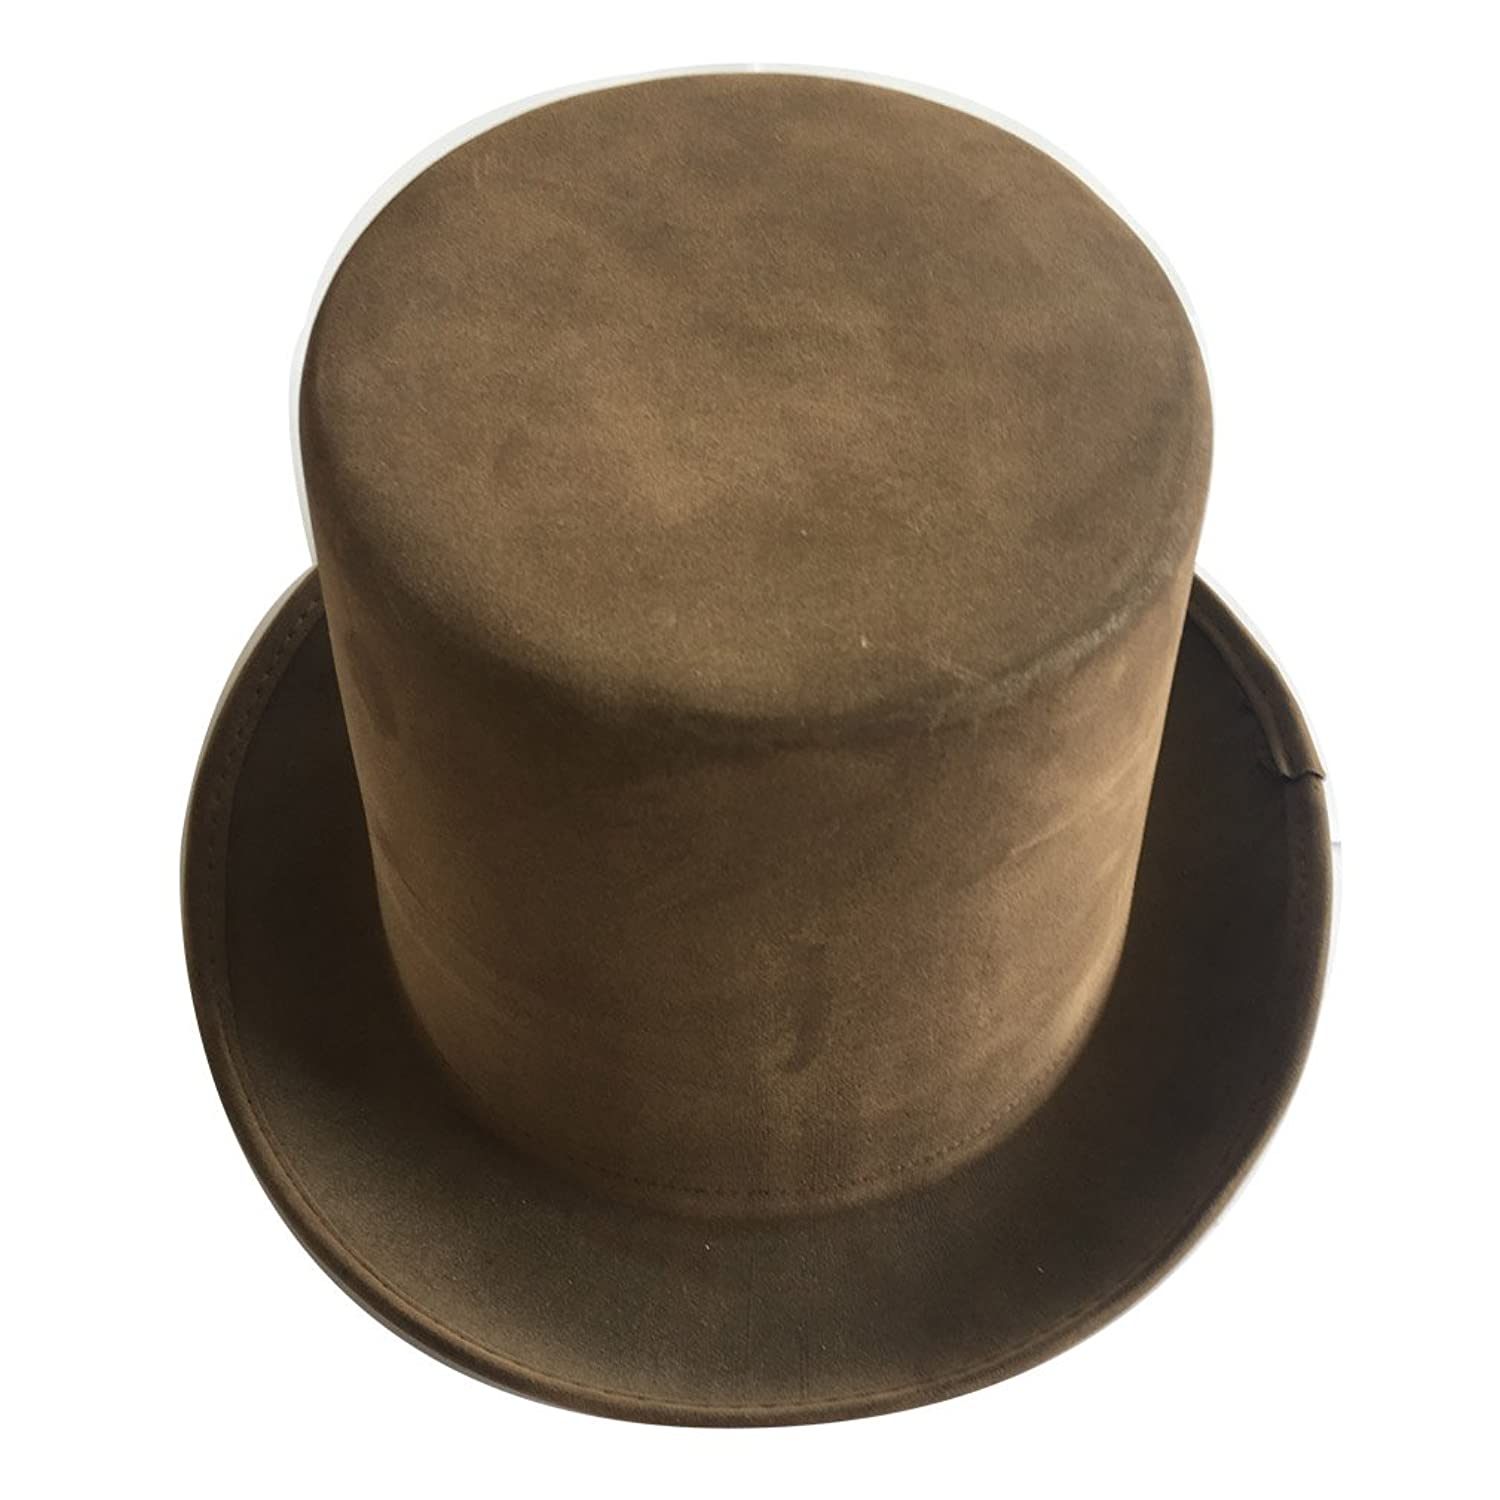 b201474b0c853 Brand new Fantastic quality Steampunk Steampunk Gentleman Brown Top Hat  Great accessory for any Adult Steampunk Steampunk Gentleman costume